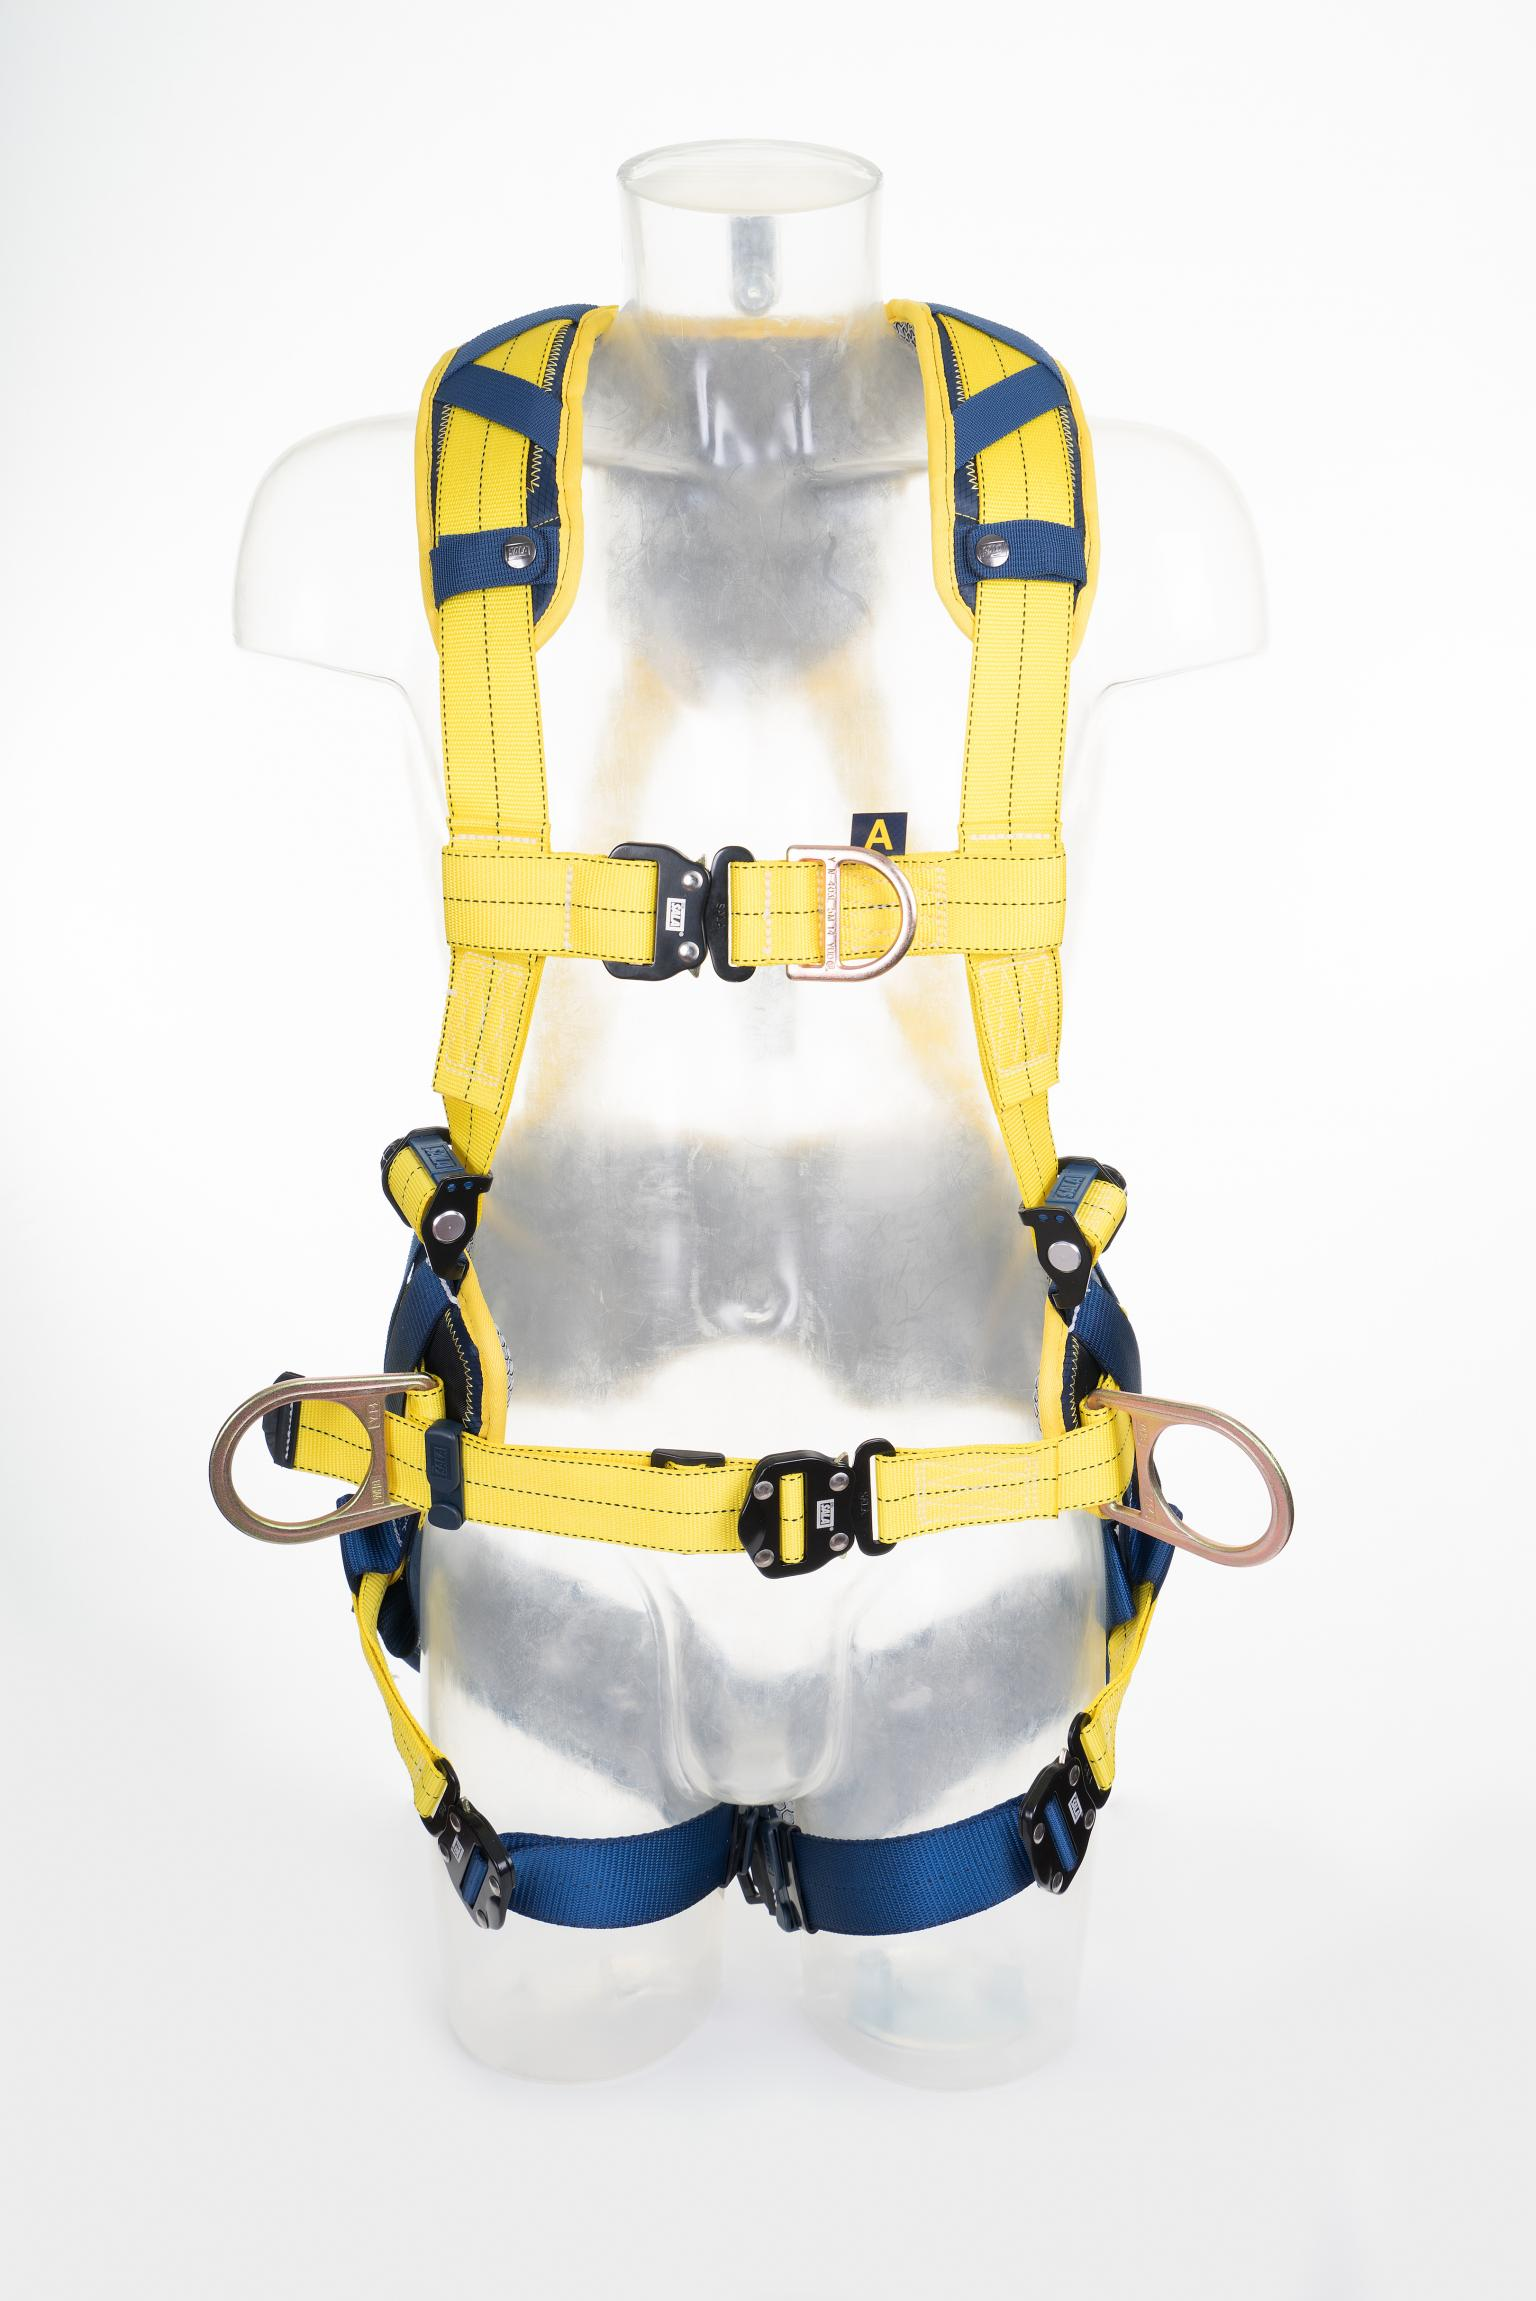 Delta Comfort harnesses from Capital Safety feature shoulder, back and leg padding, coated, corrosion-resistant hardware, and abrasion-resistant webbing